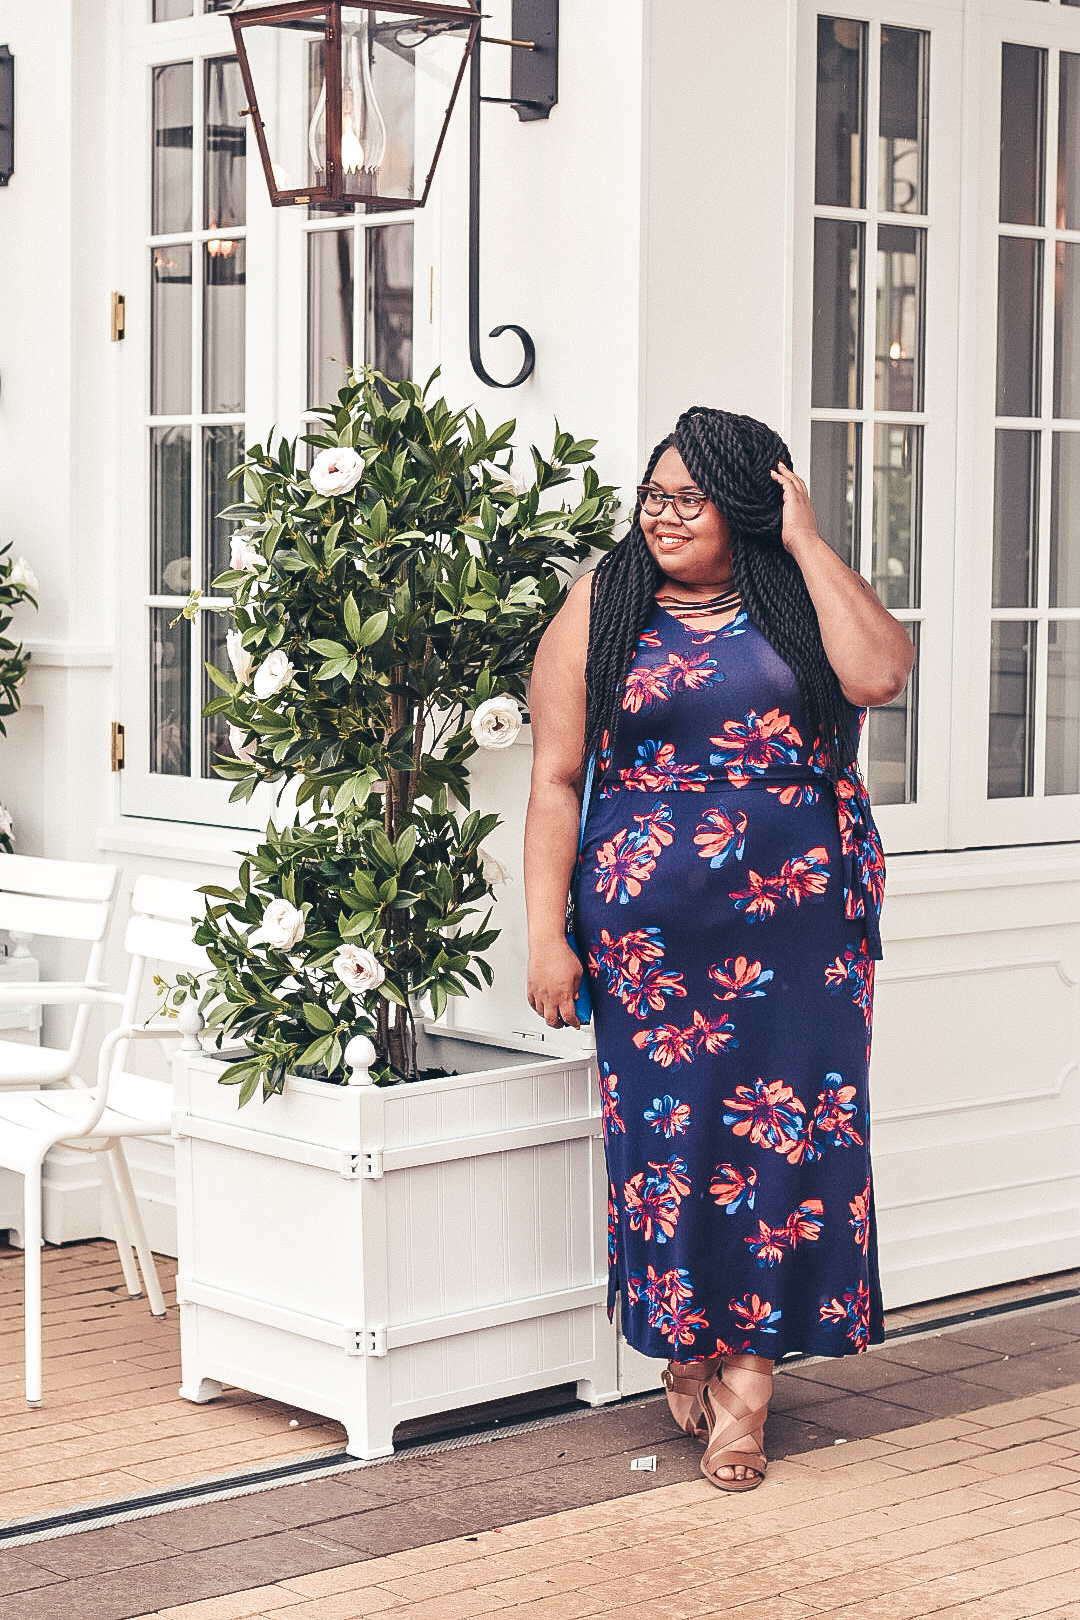 Get a little bit fancy for your holiday get-together! Enjoy this fun floral maxi dress perfect for the 4th of July!